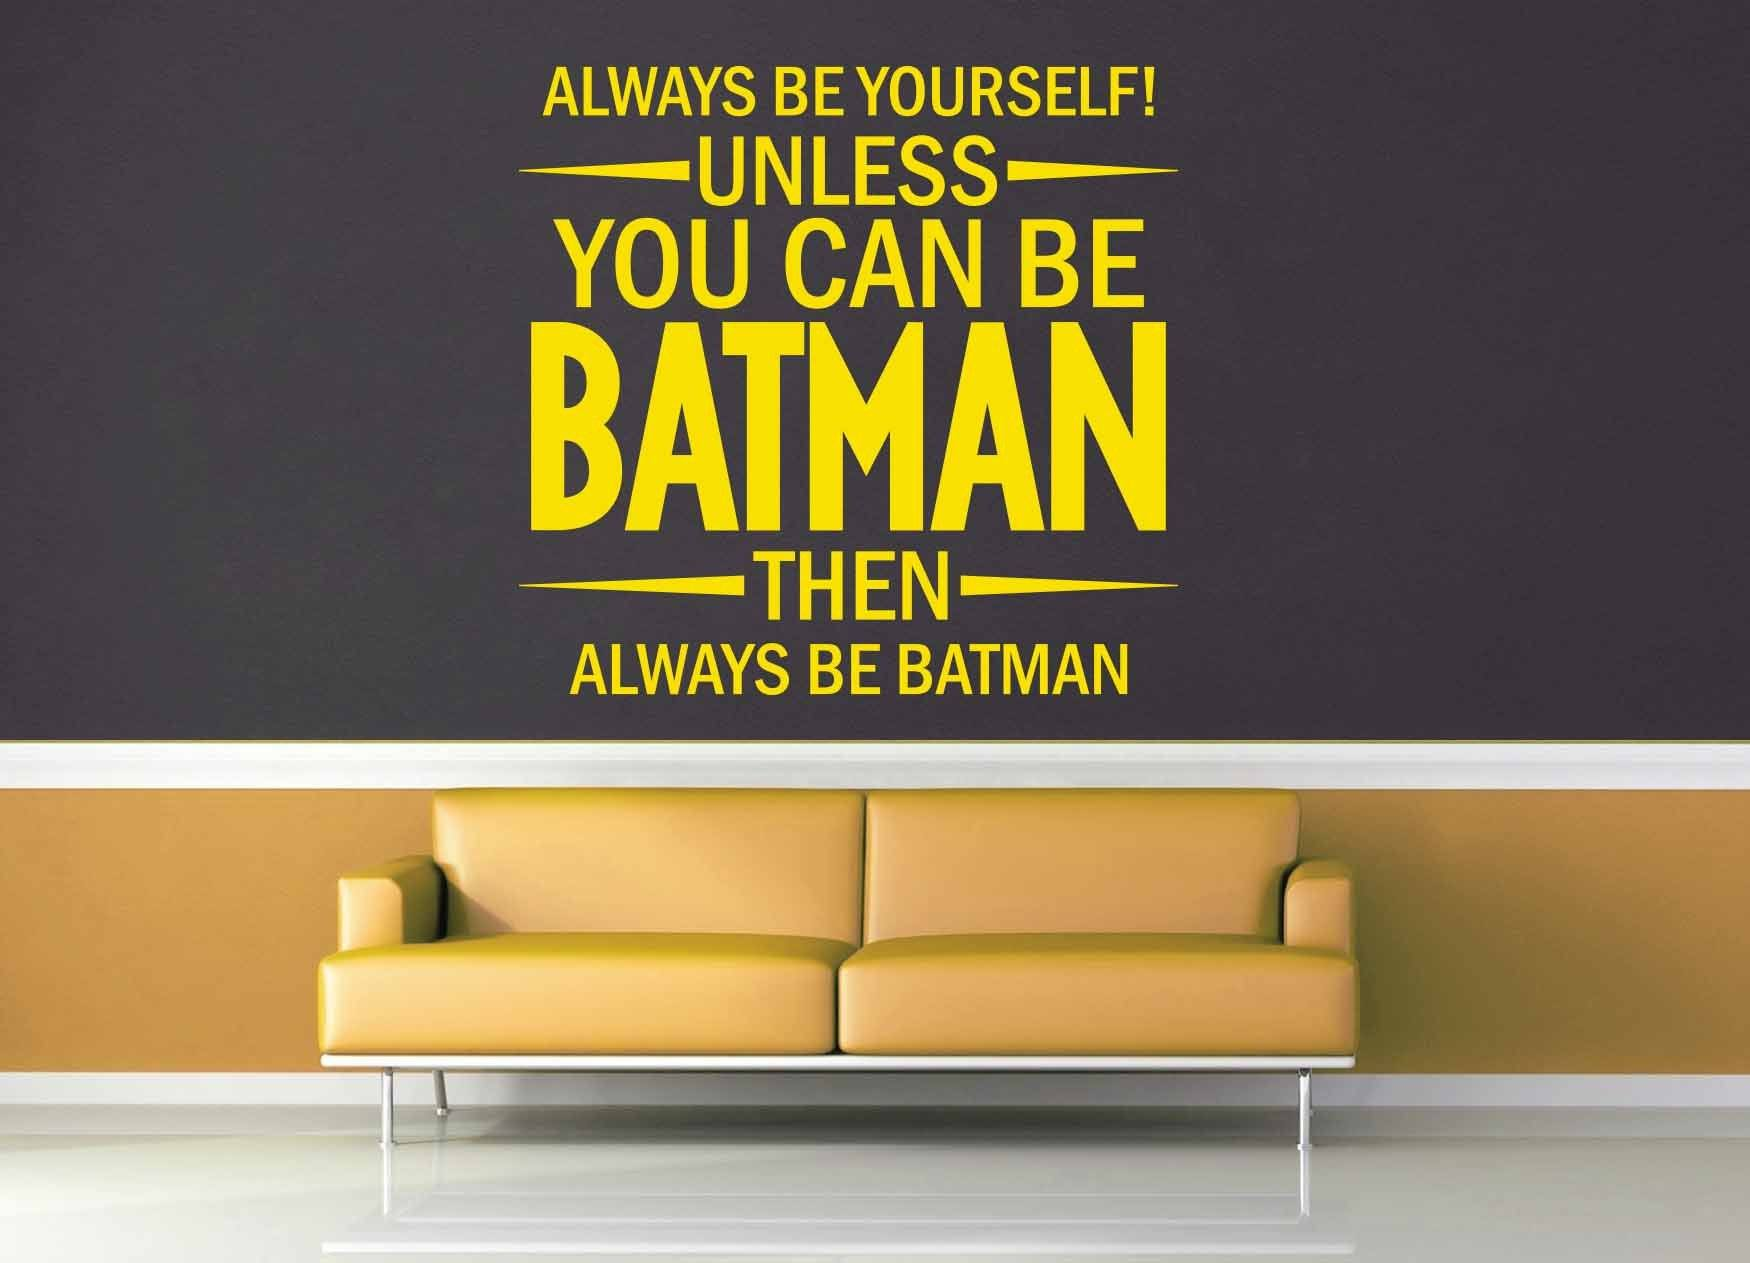 Unless You Can Be Batman - Wall Decal – geekerymade